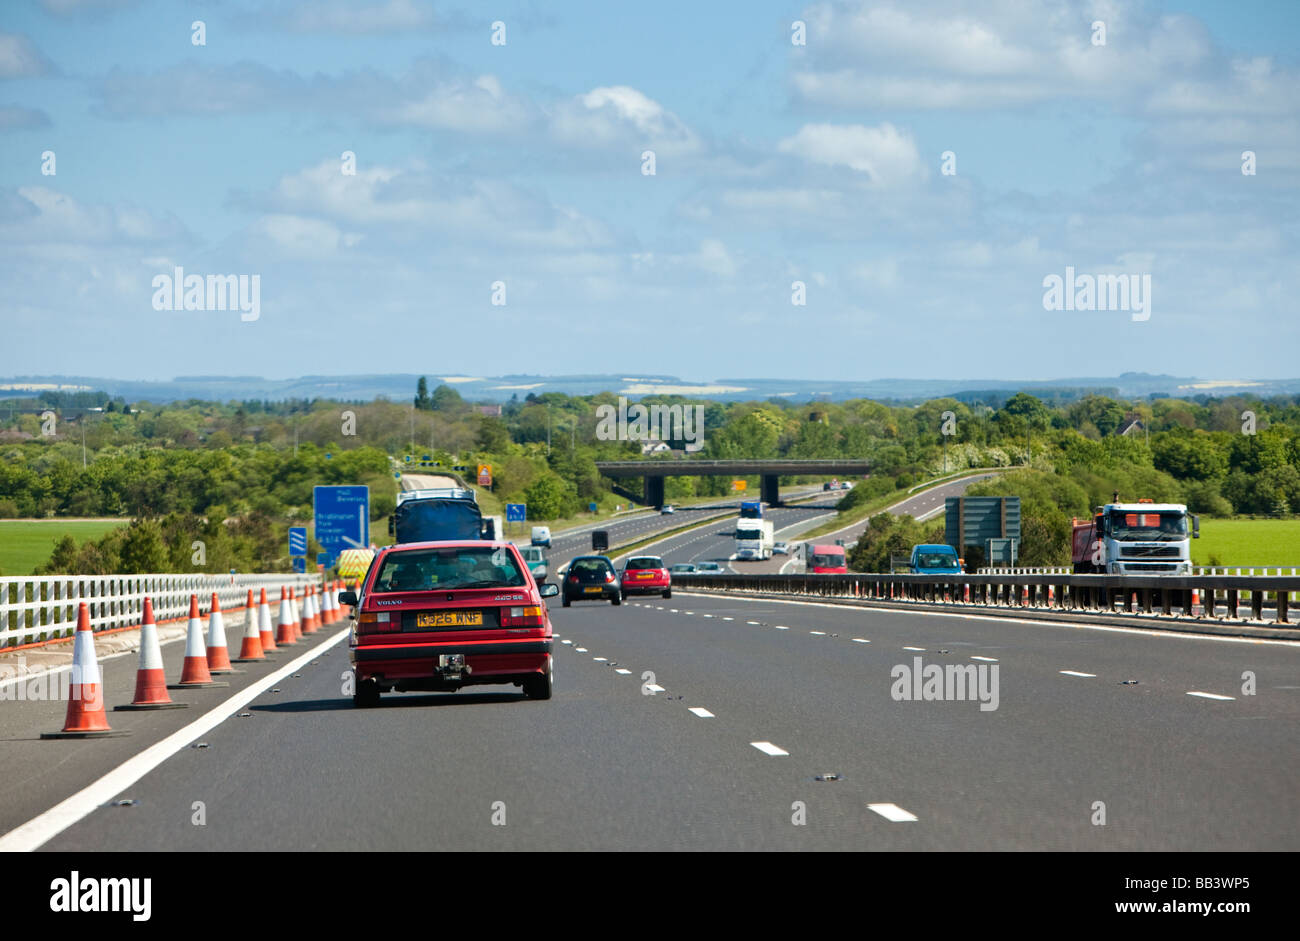 Cars driving uk, on a motorway, M62, England, UK - Stock Image